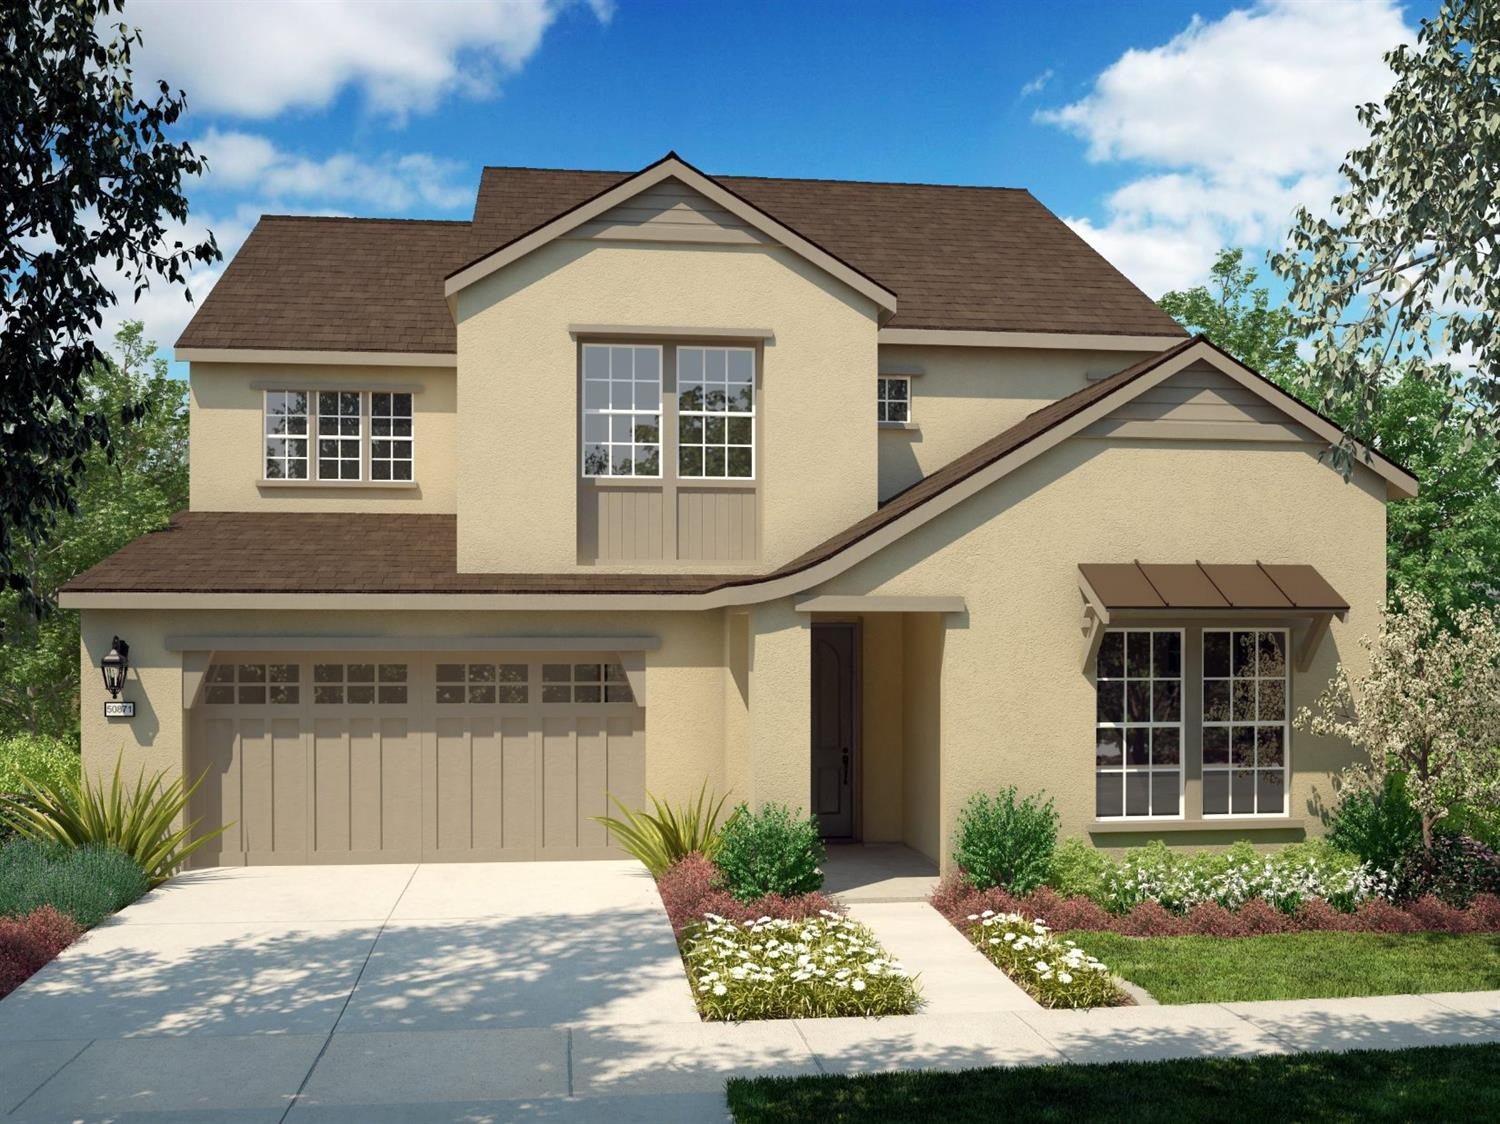 $1,156,649 - 4Br/5Ba -  for Sale in Sage At The Cannery, Davis